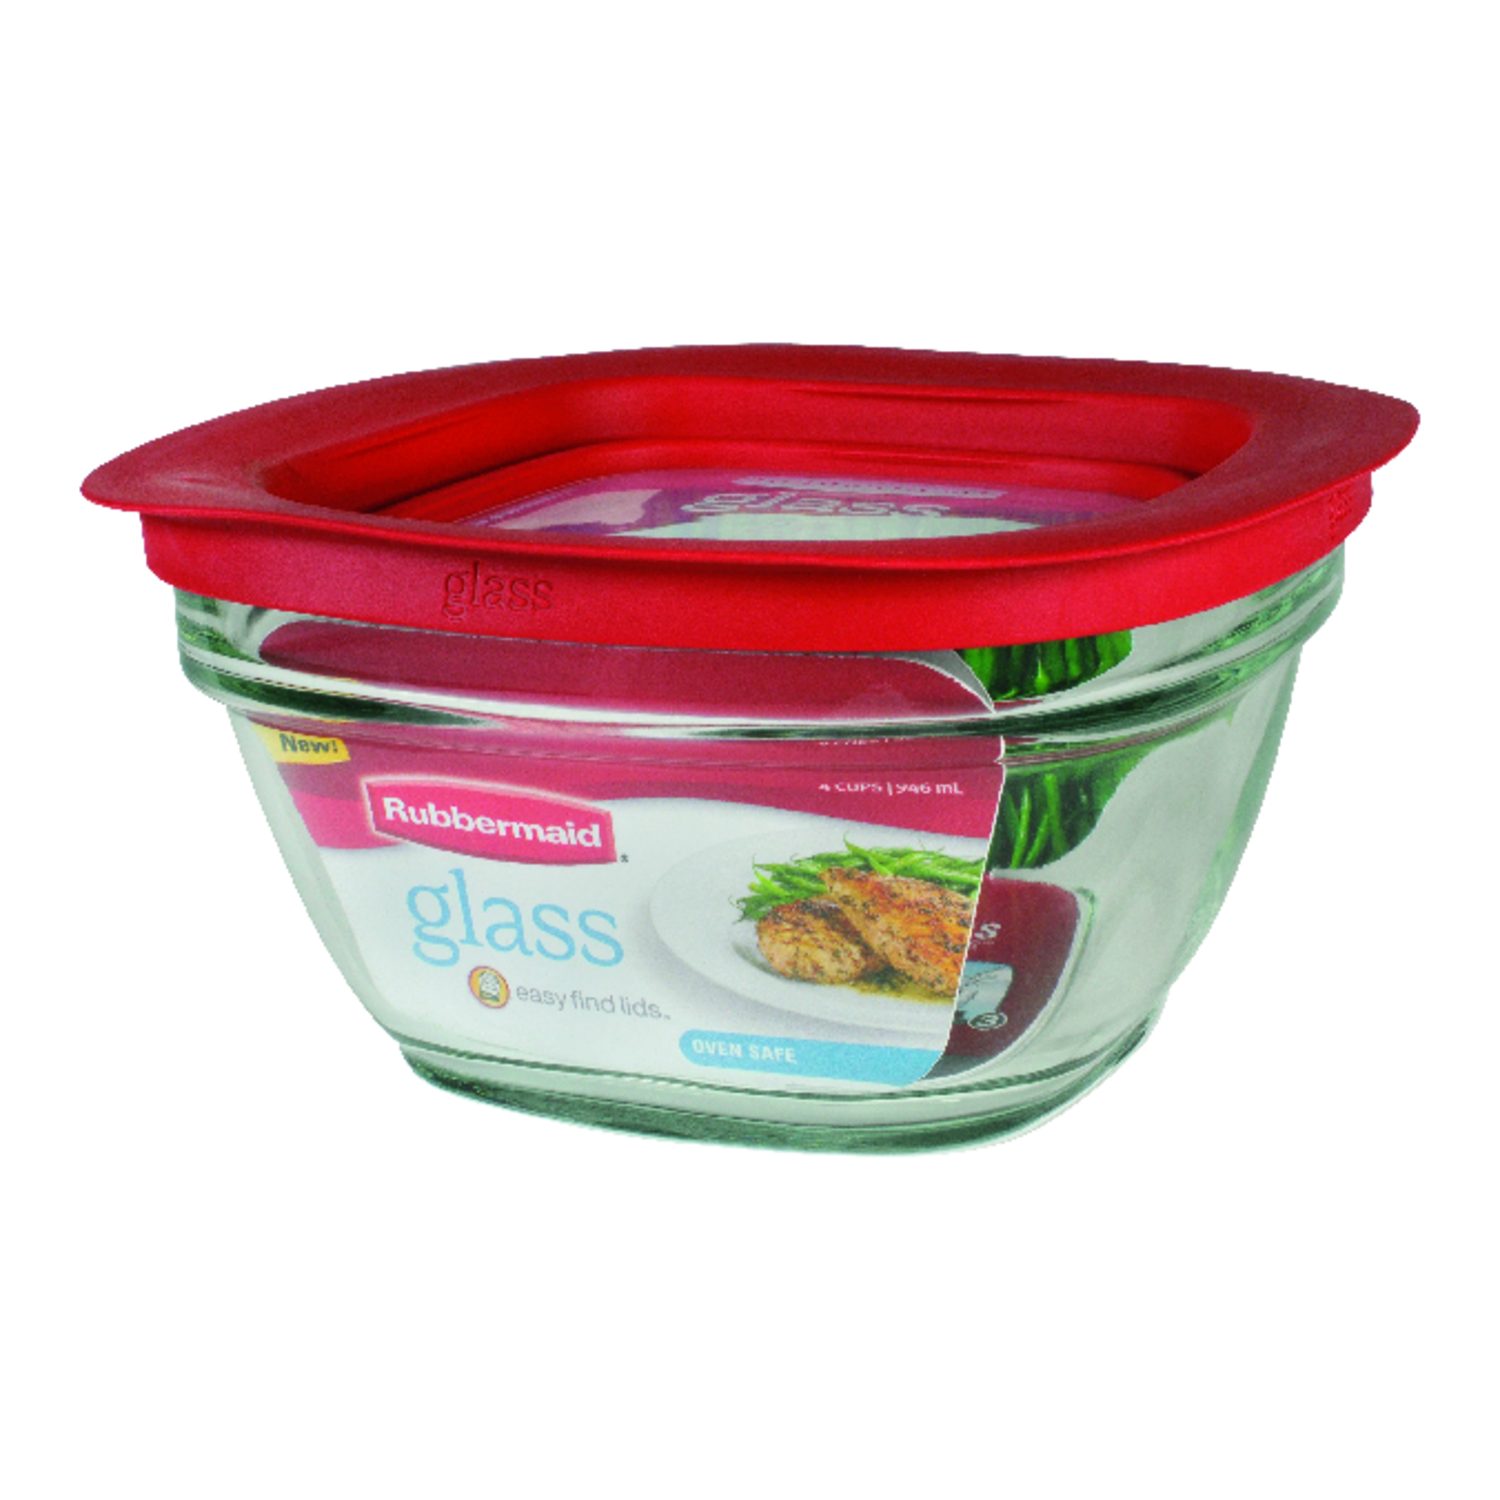 Rubbermaid  4 cups Food Storage Container